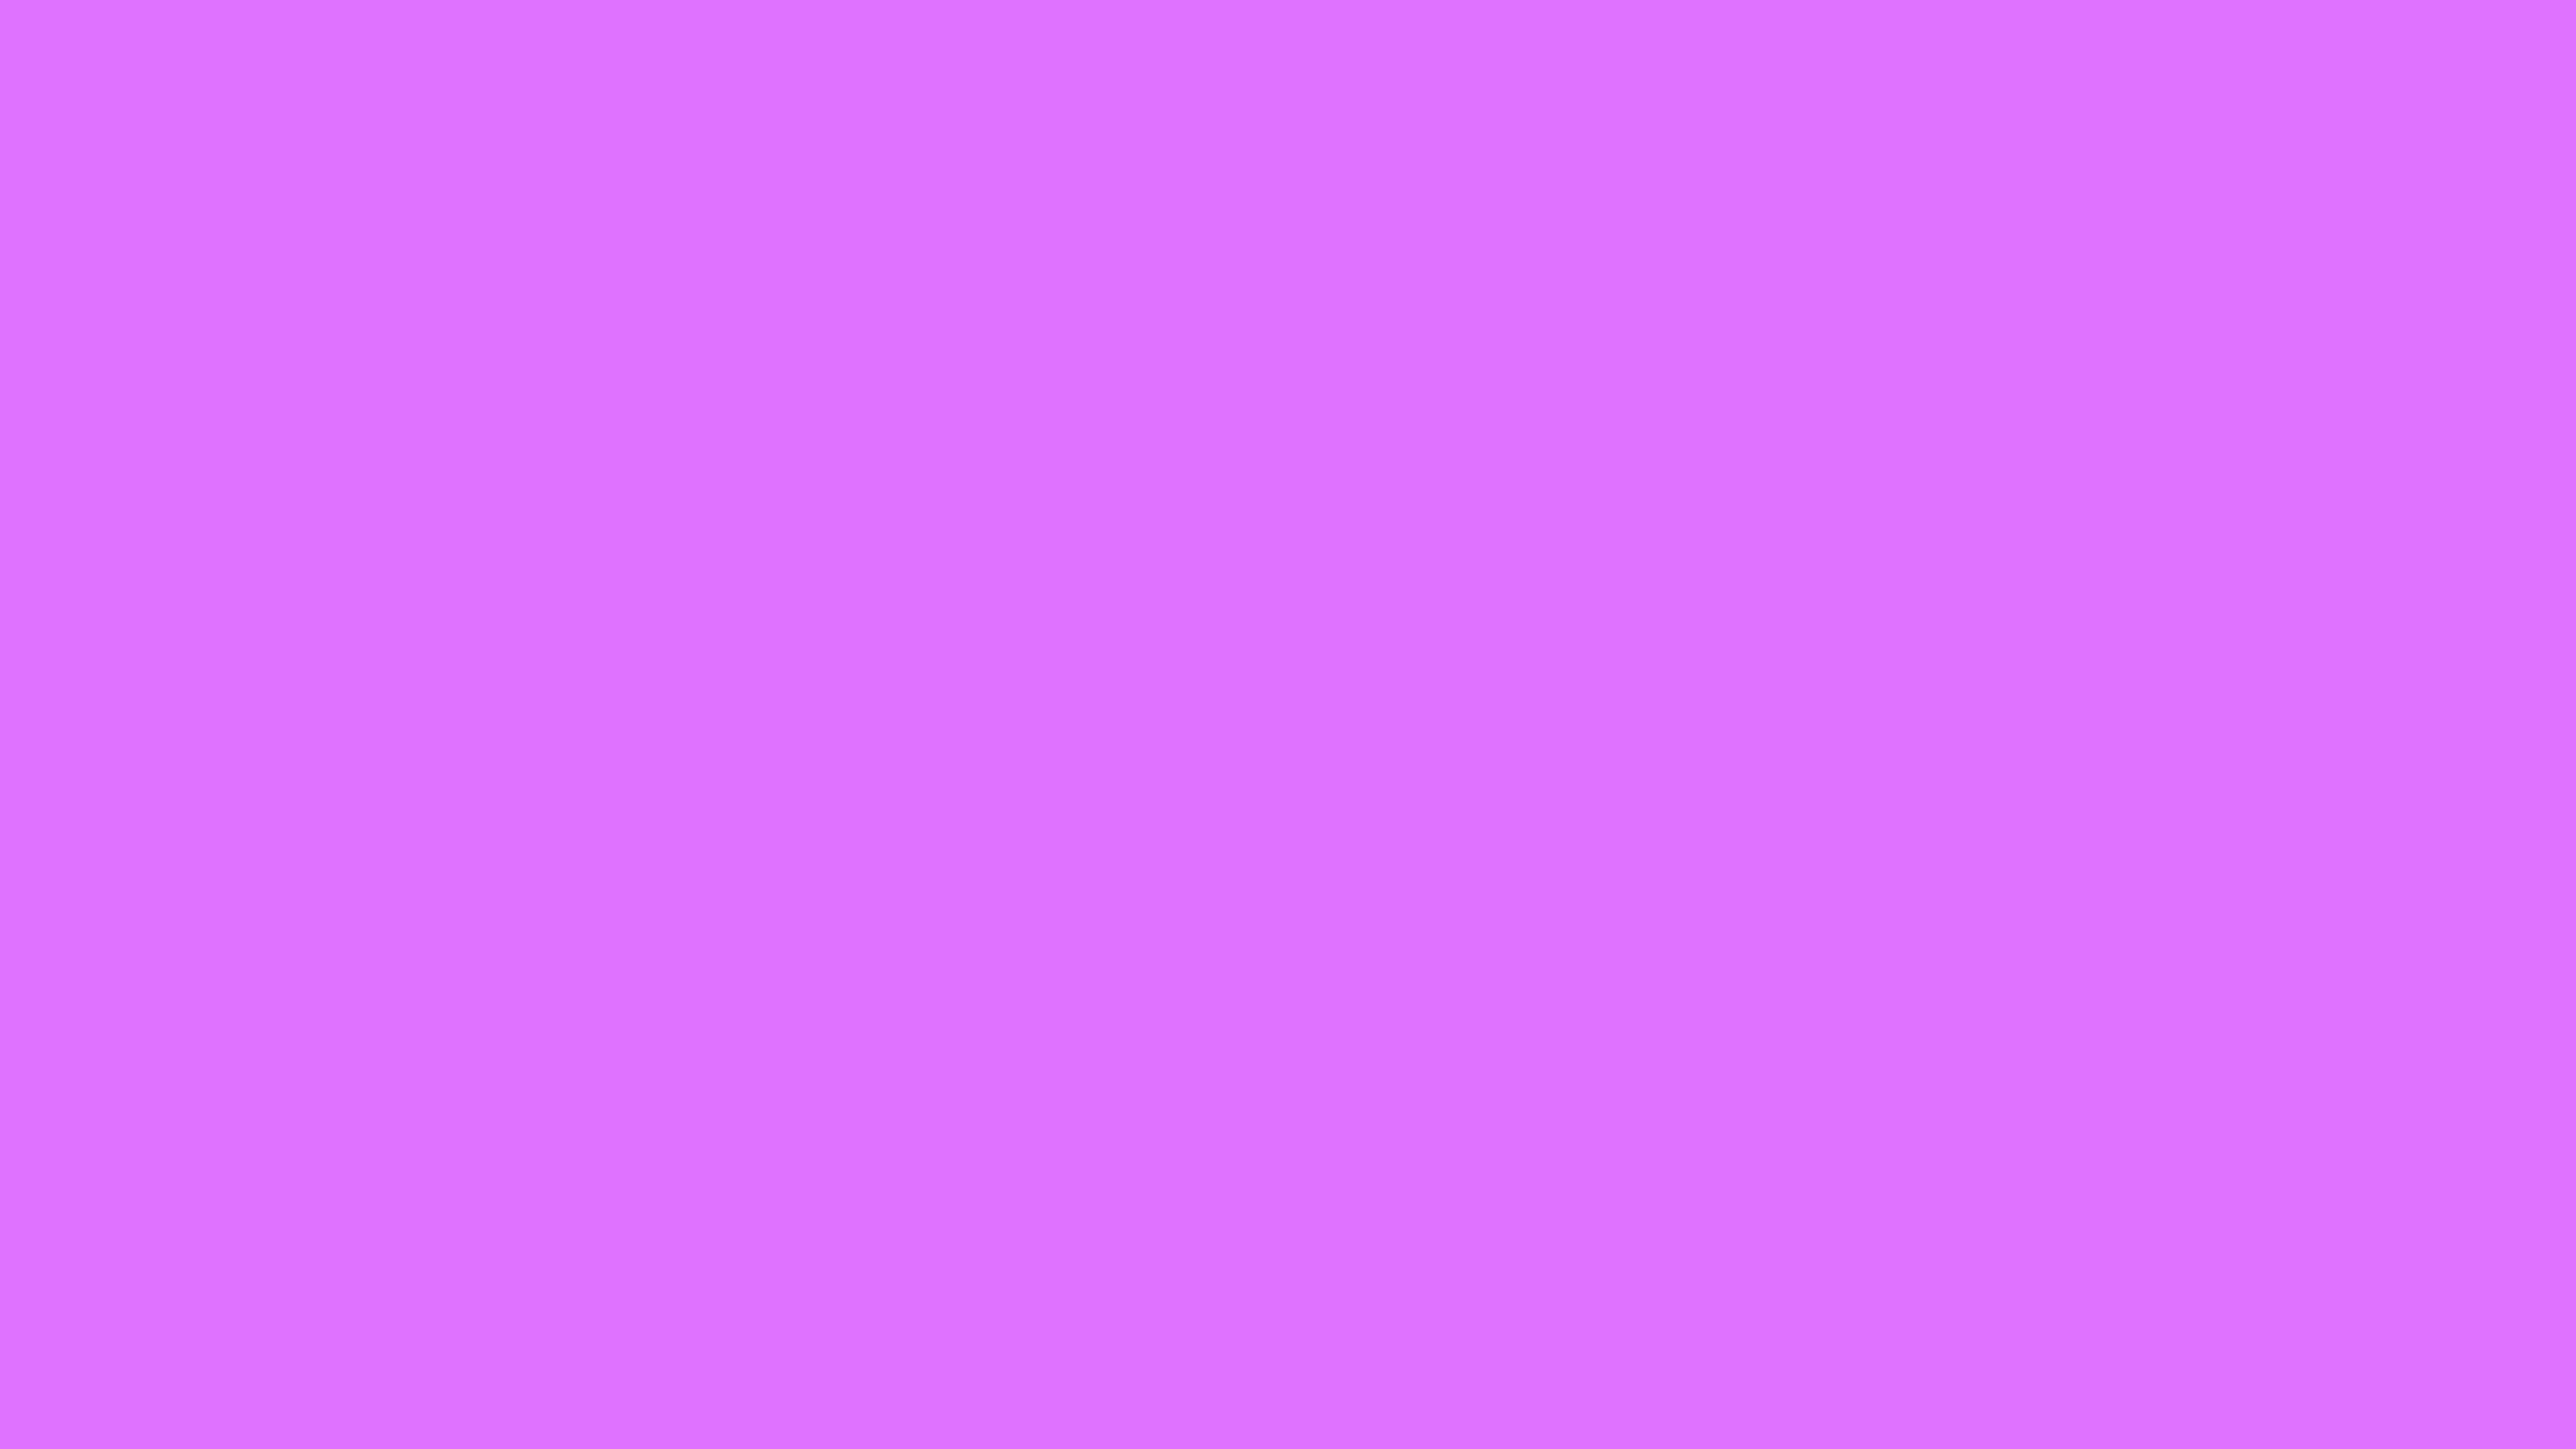 7680x4320 Heliotrope Solid Color Background